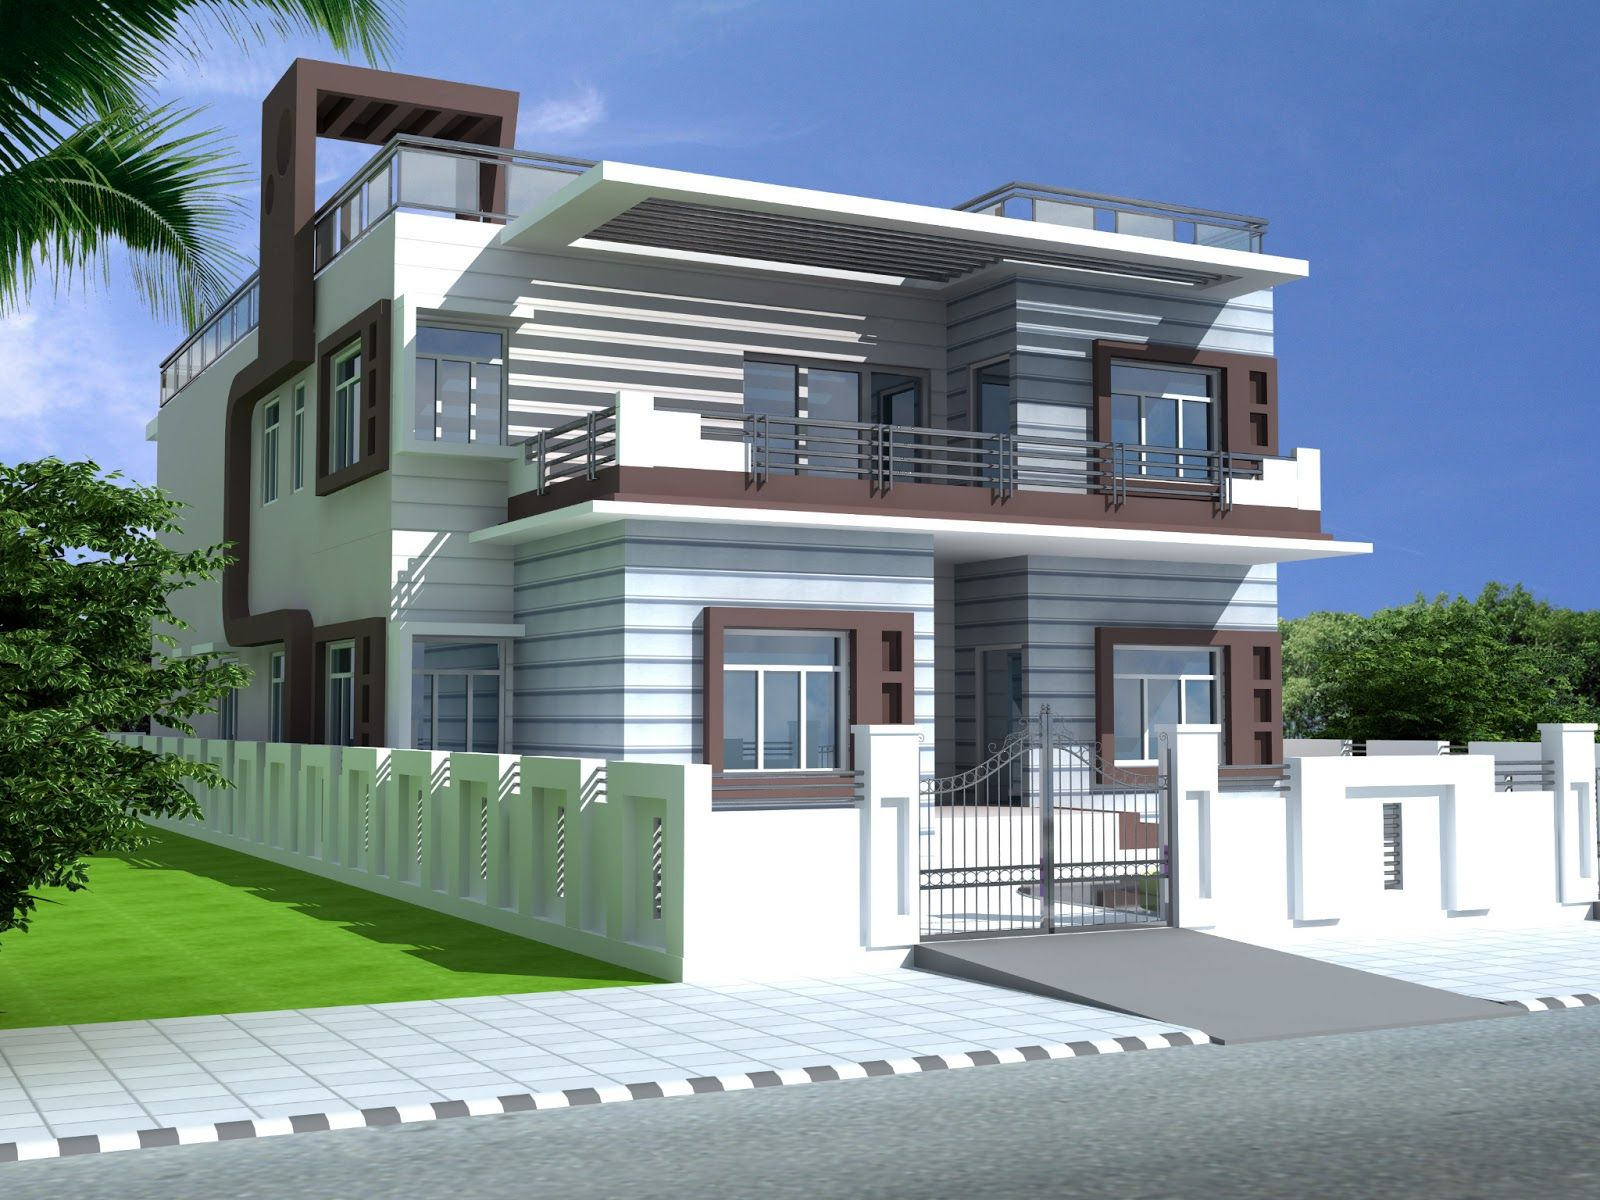 6 bedrooms duplex house design in 390m2 13m x 30m for Duplex plan design